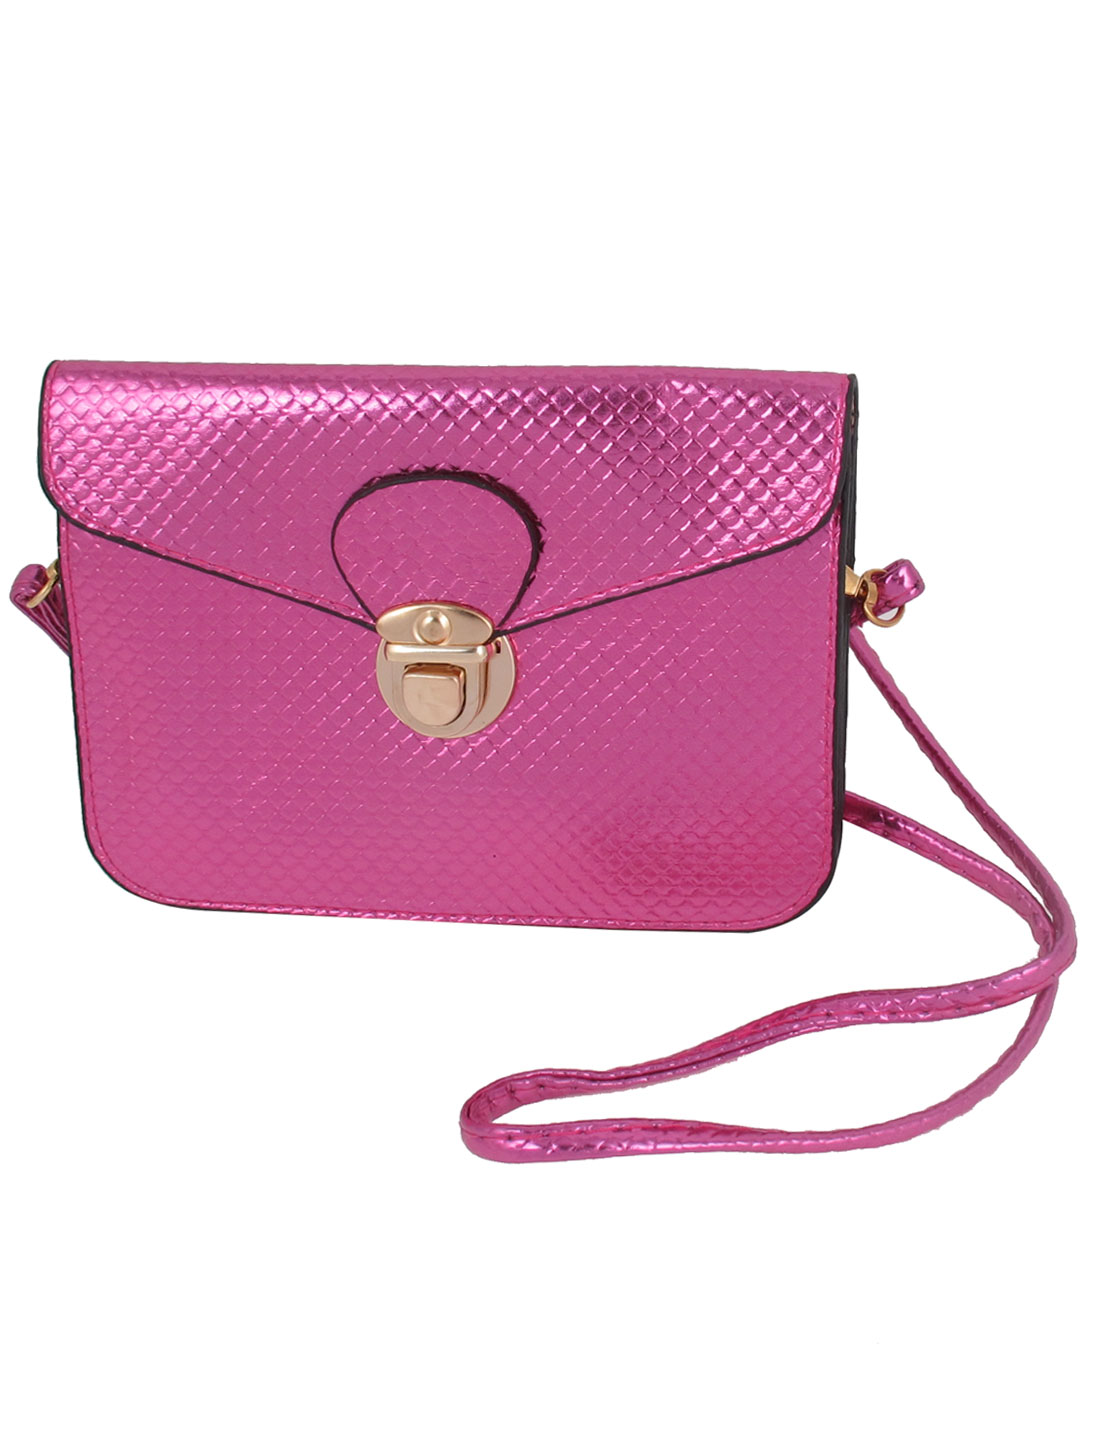 Women Fuchsia Faux Leather Push Lock Closure Cross Body Bag Shoulder Bag Purse